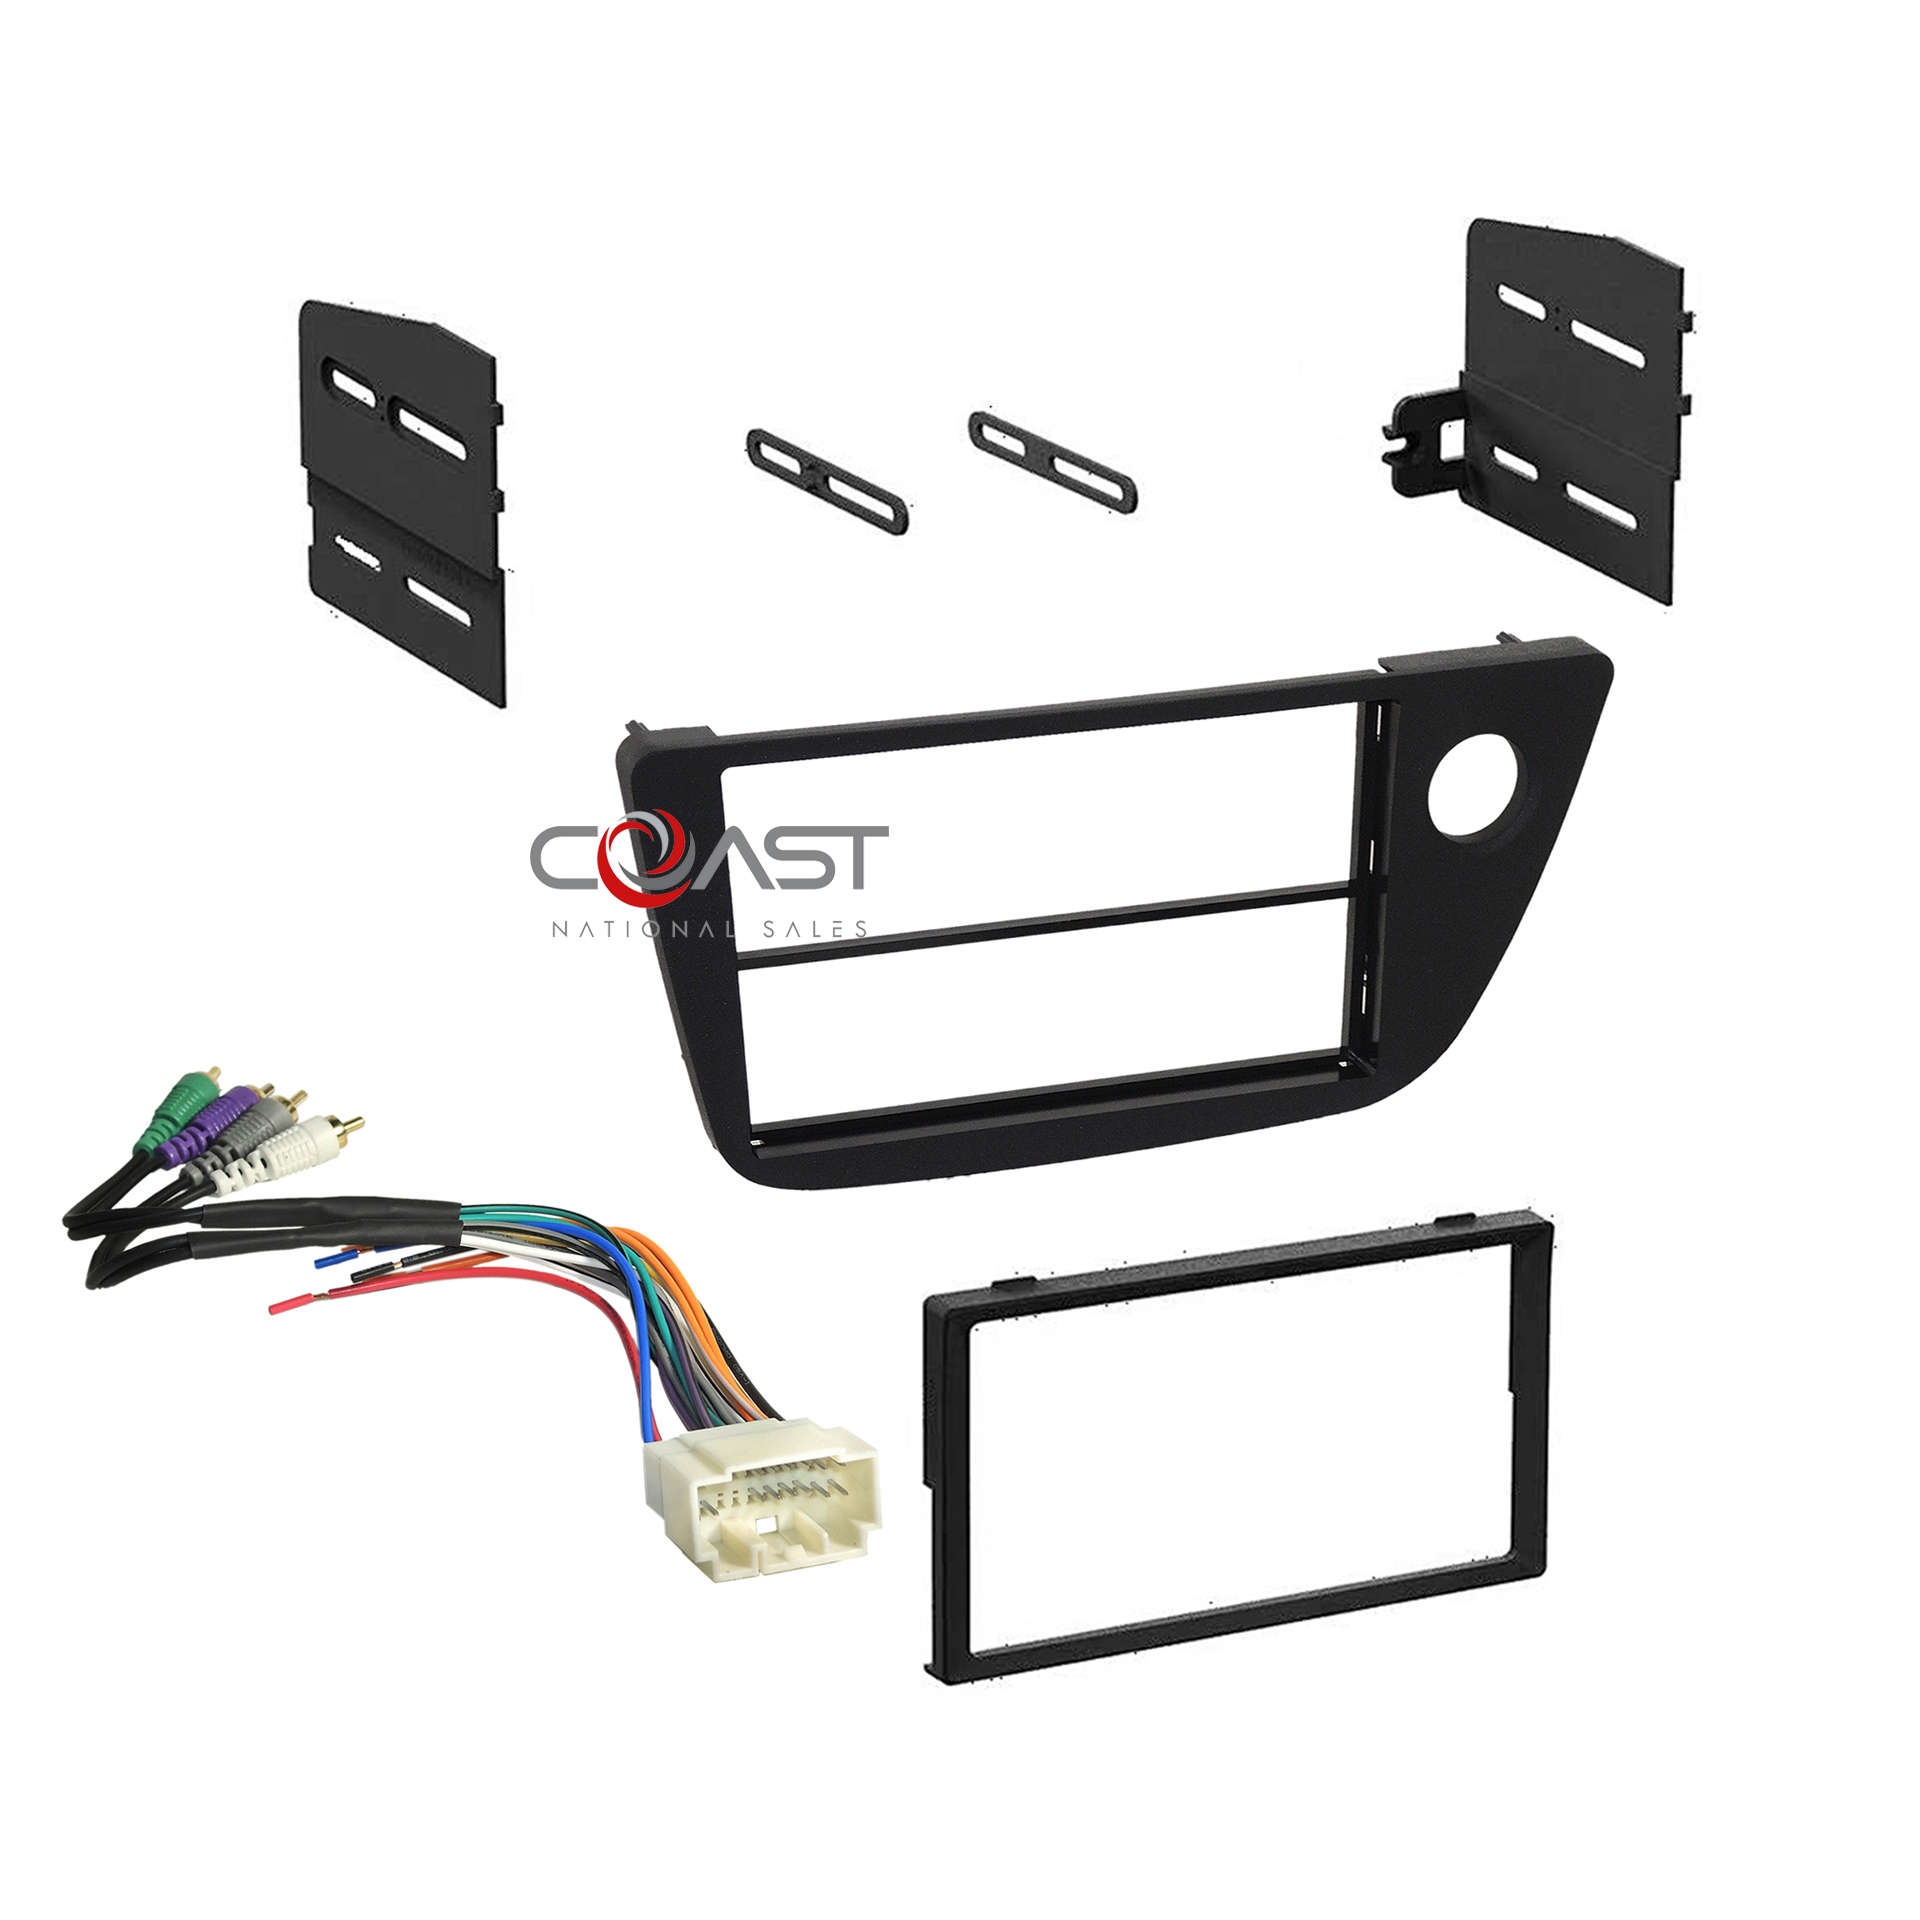 Single Double DIN Stereo Dash Kit + Amplifier Harness For